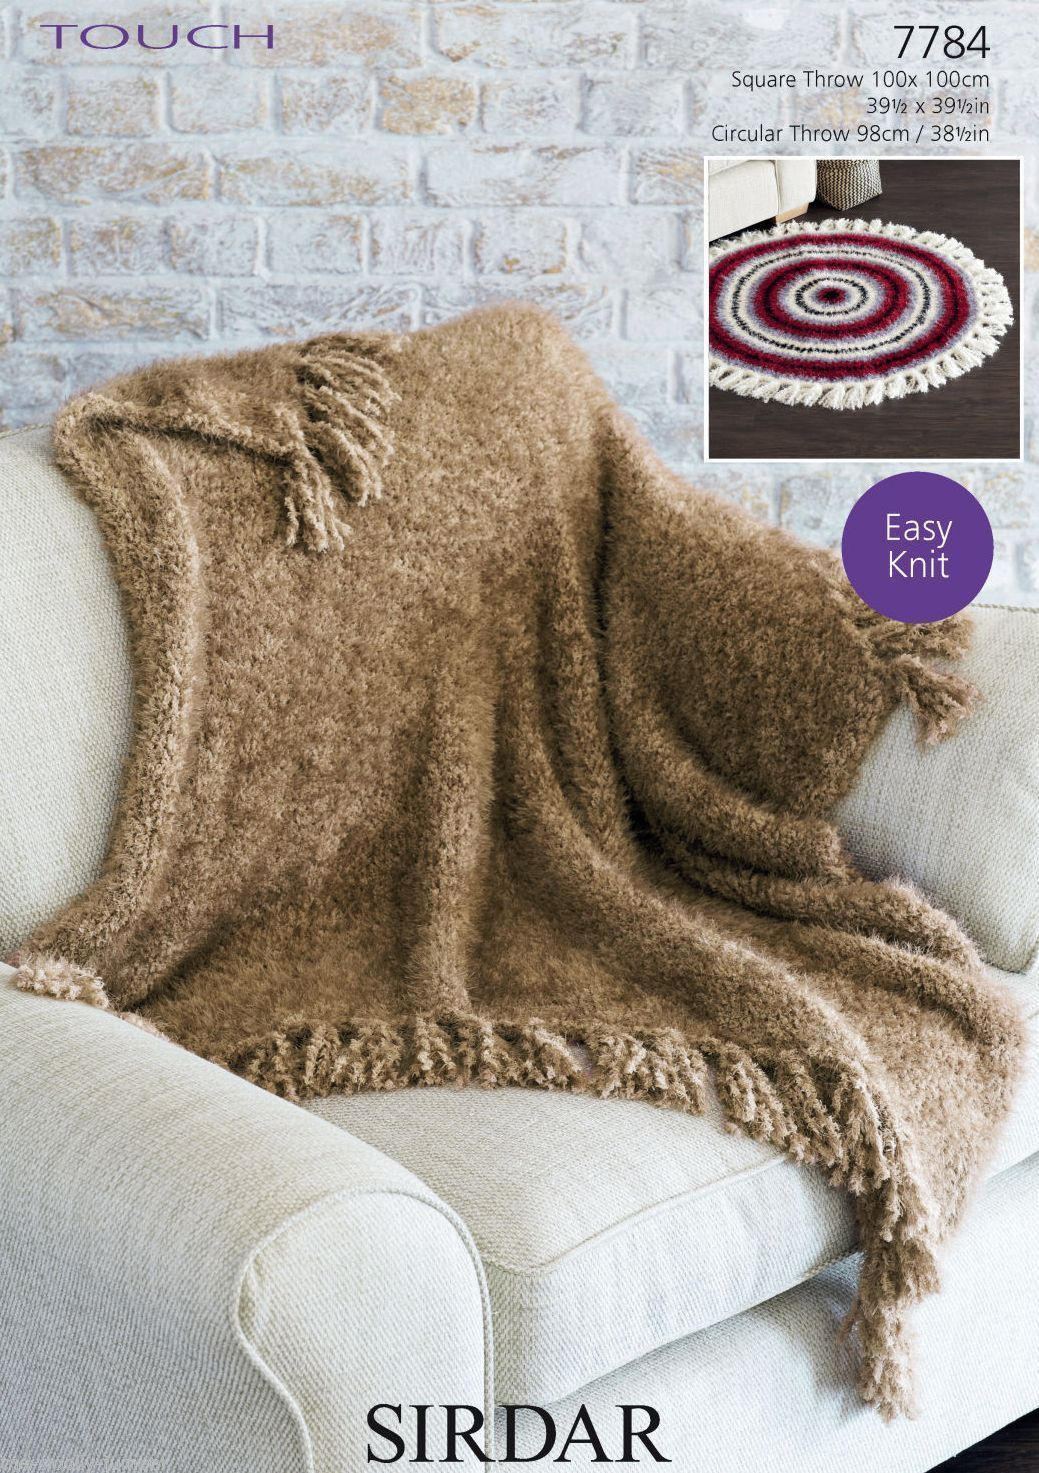 7784 - SIRDAR TOUCH SUPER CHUNKY THROW KNITTING PATTERN - VARIOUS SIZES